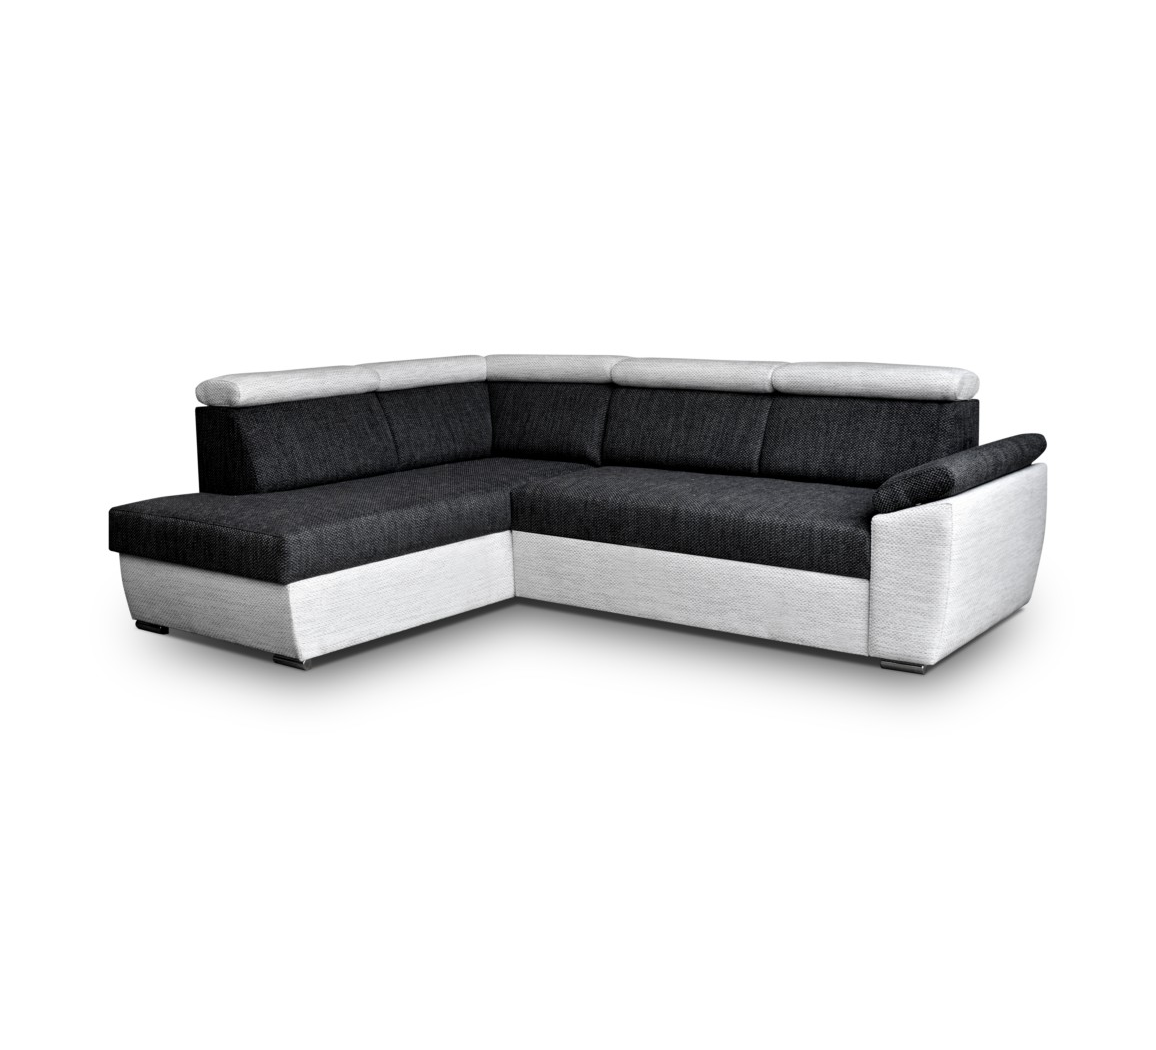 ecksofa modena schwarz m bel muller braun. Black Bedroom Furniture Sets. Home Design Ideas